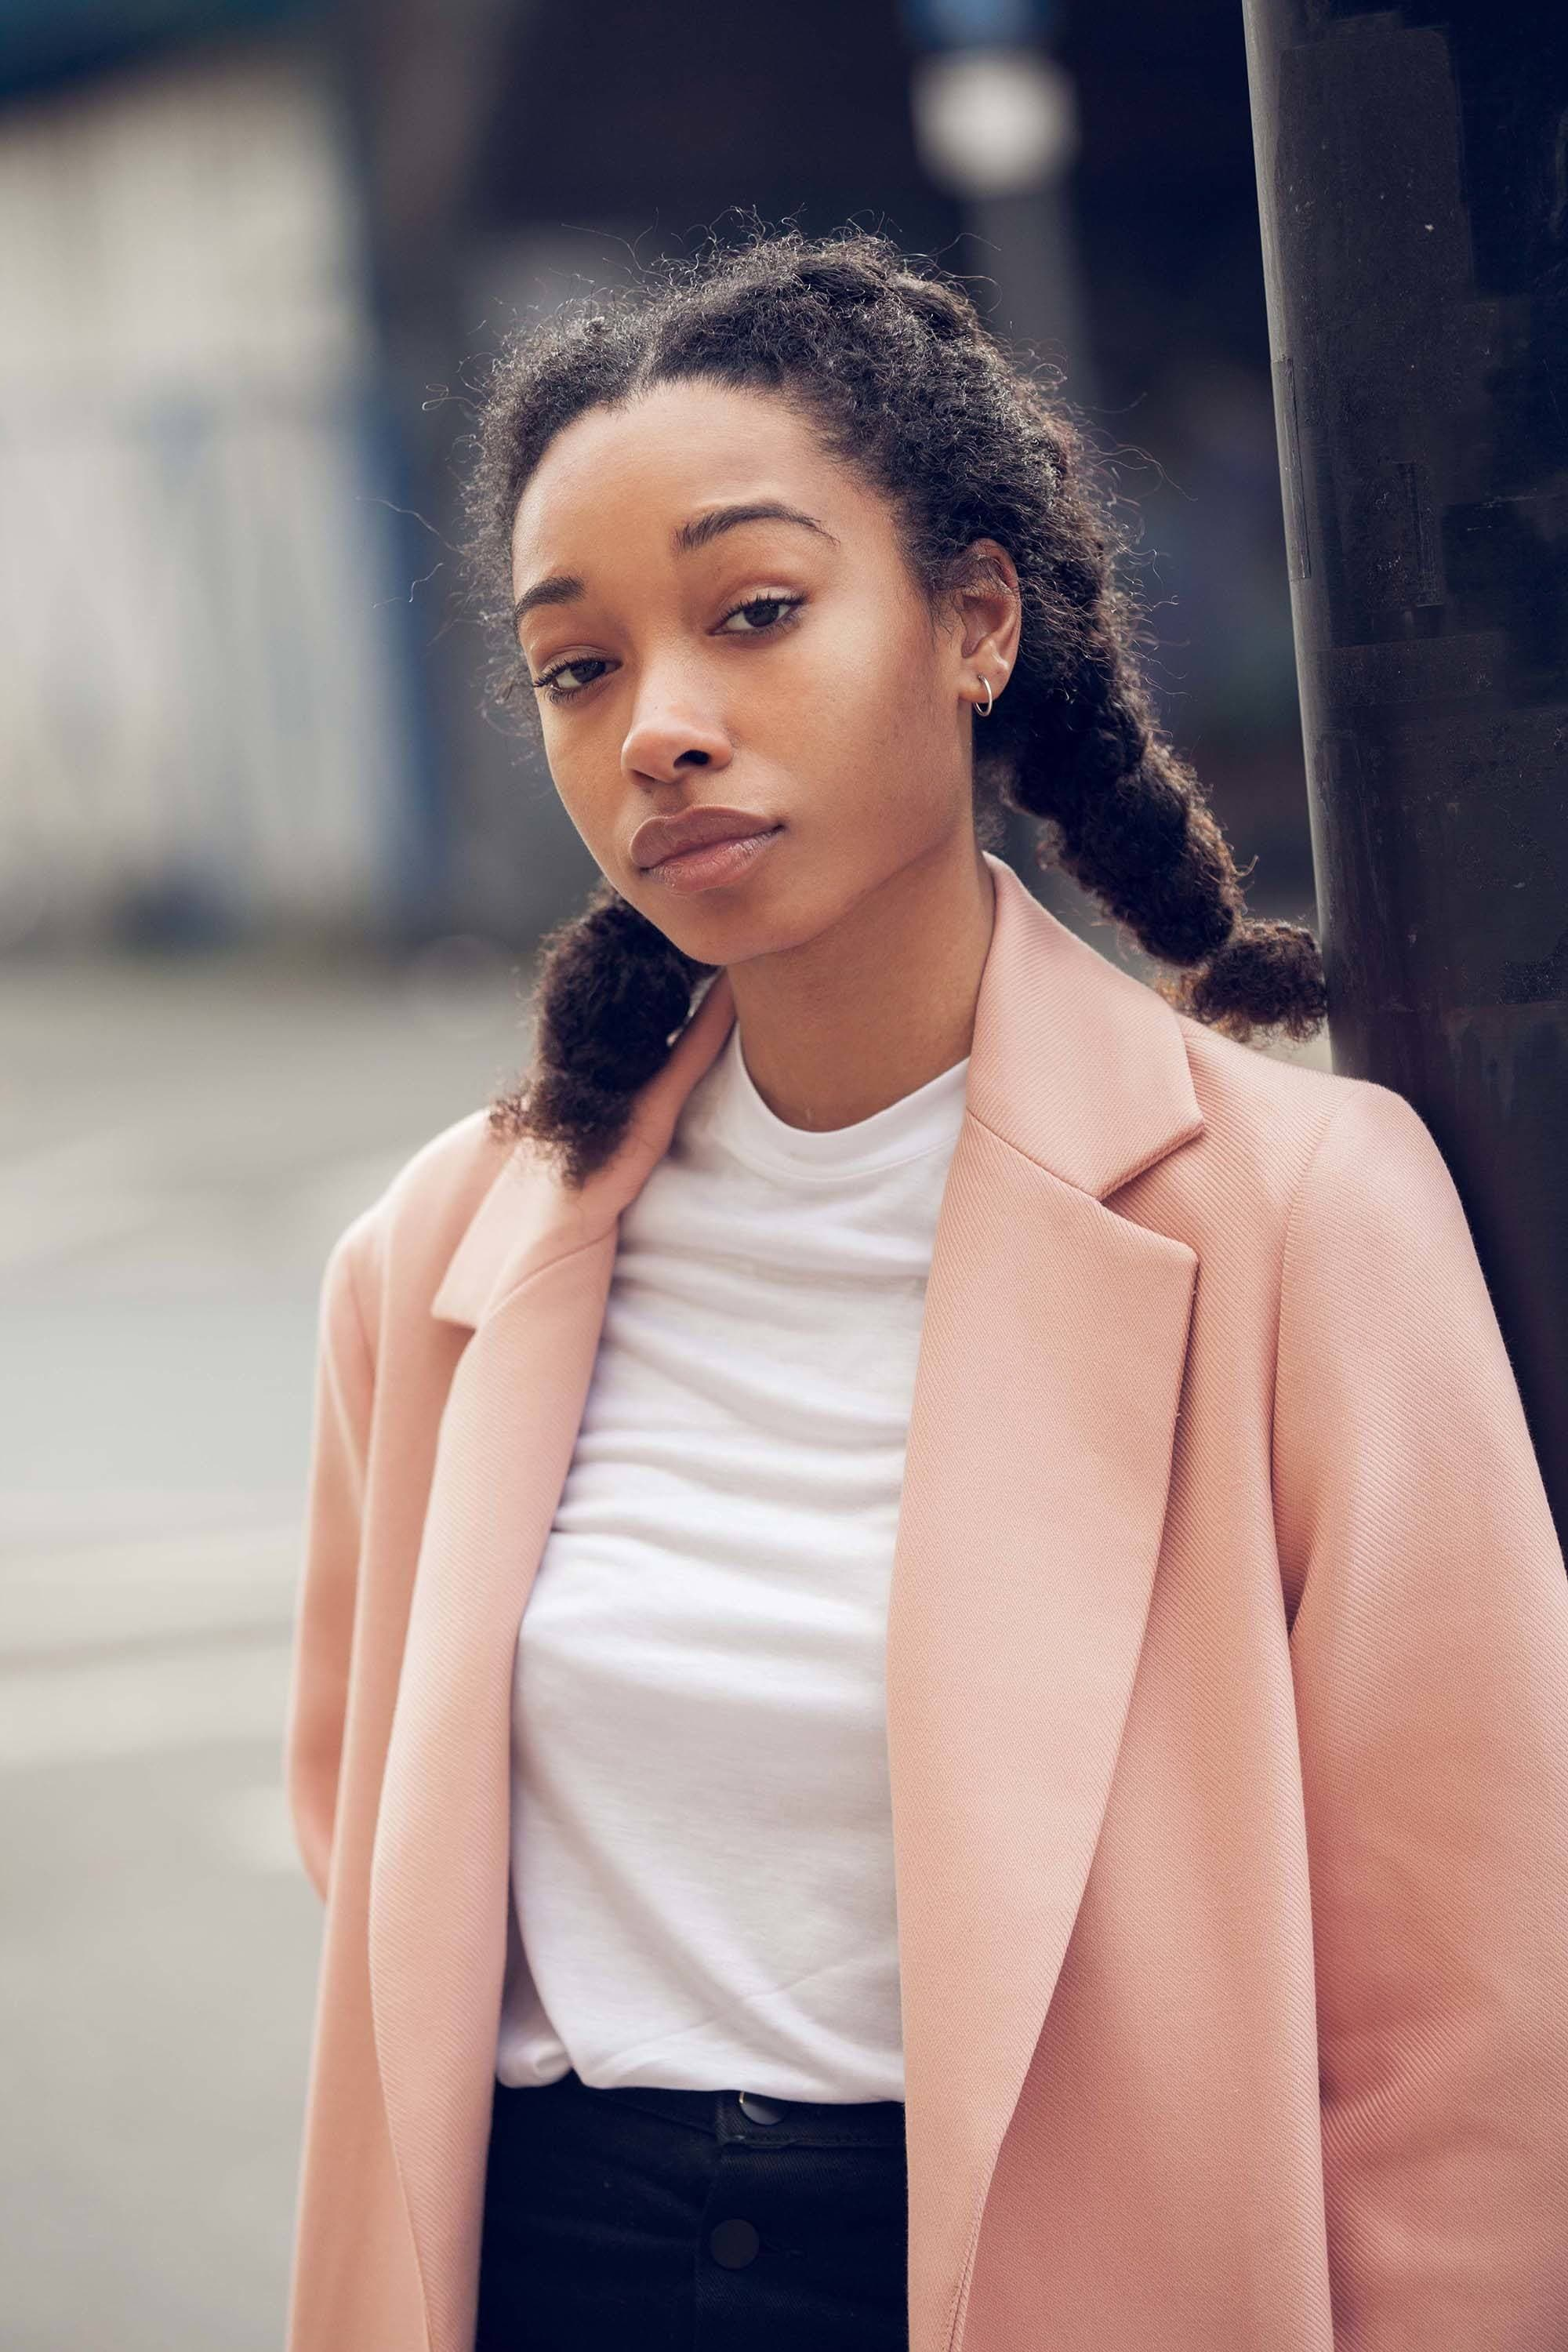 Easy natural hairstyles: Close up shot of street style model with natural hair styled it into flat twist pigtails, wearing pink jacket with white tee and black jeans.